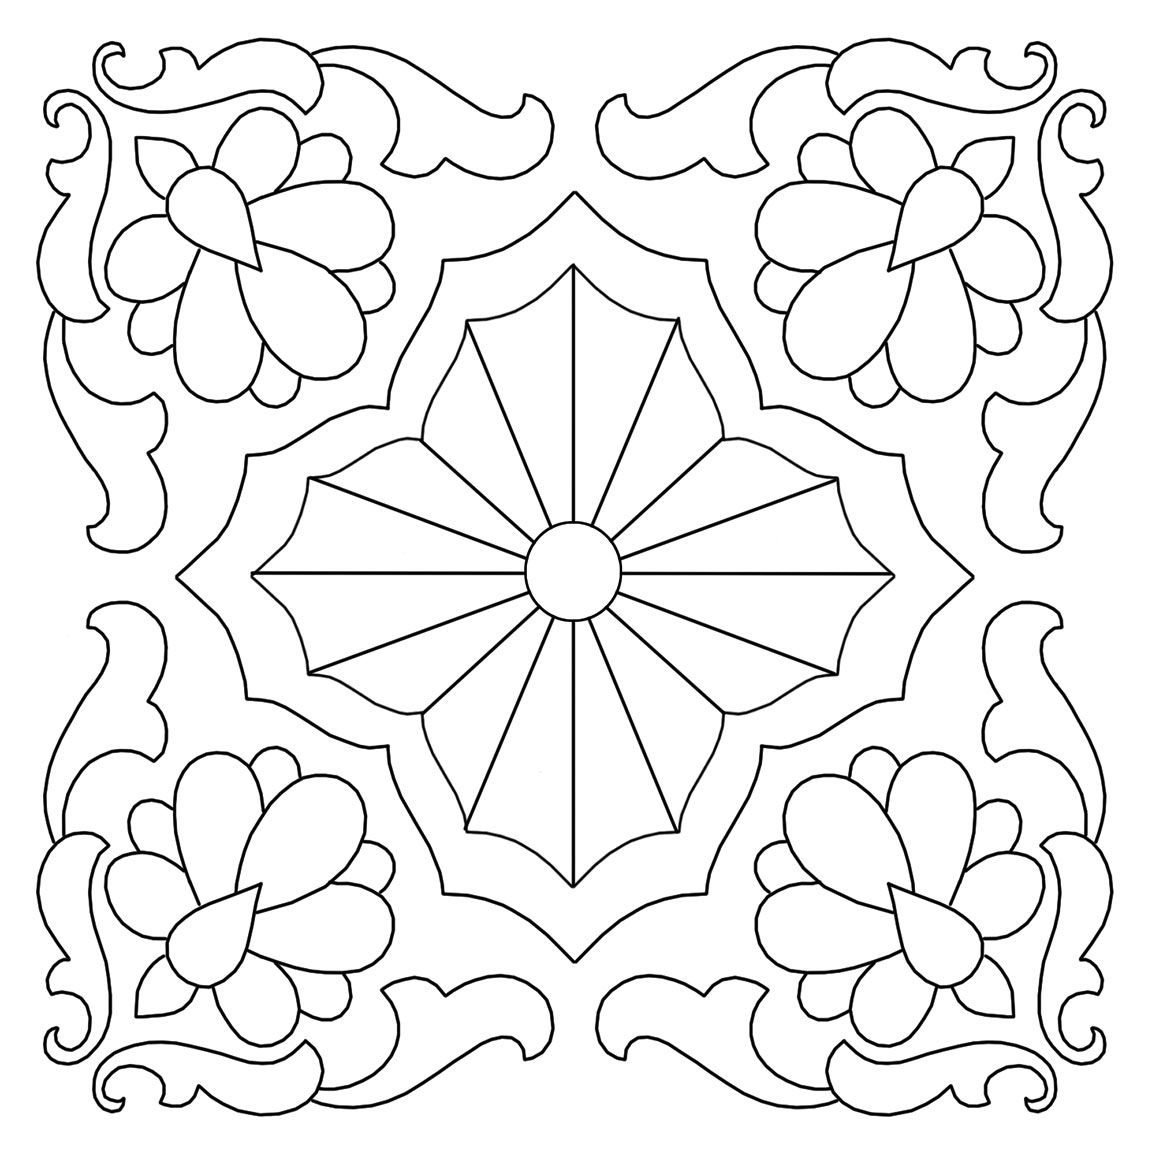 1152x1152 Quilting Design From Cushion Embroidery Transfer 3 Lots